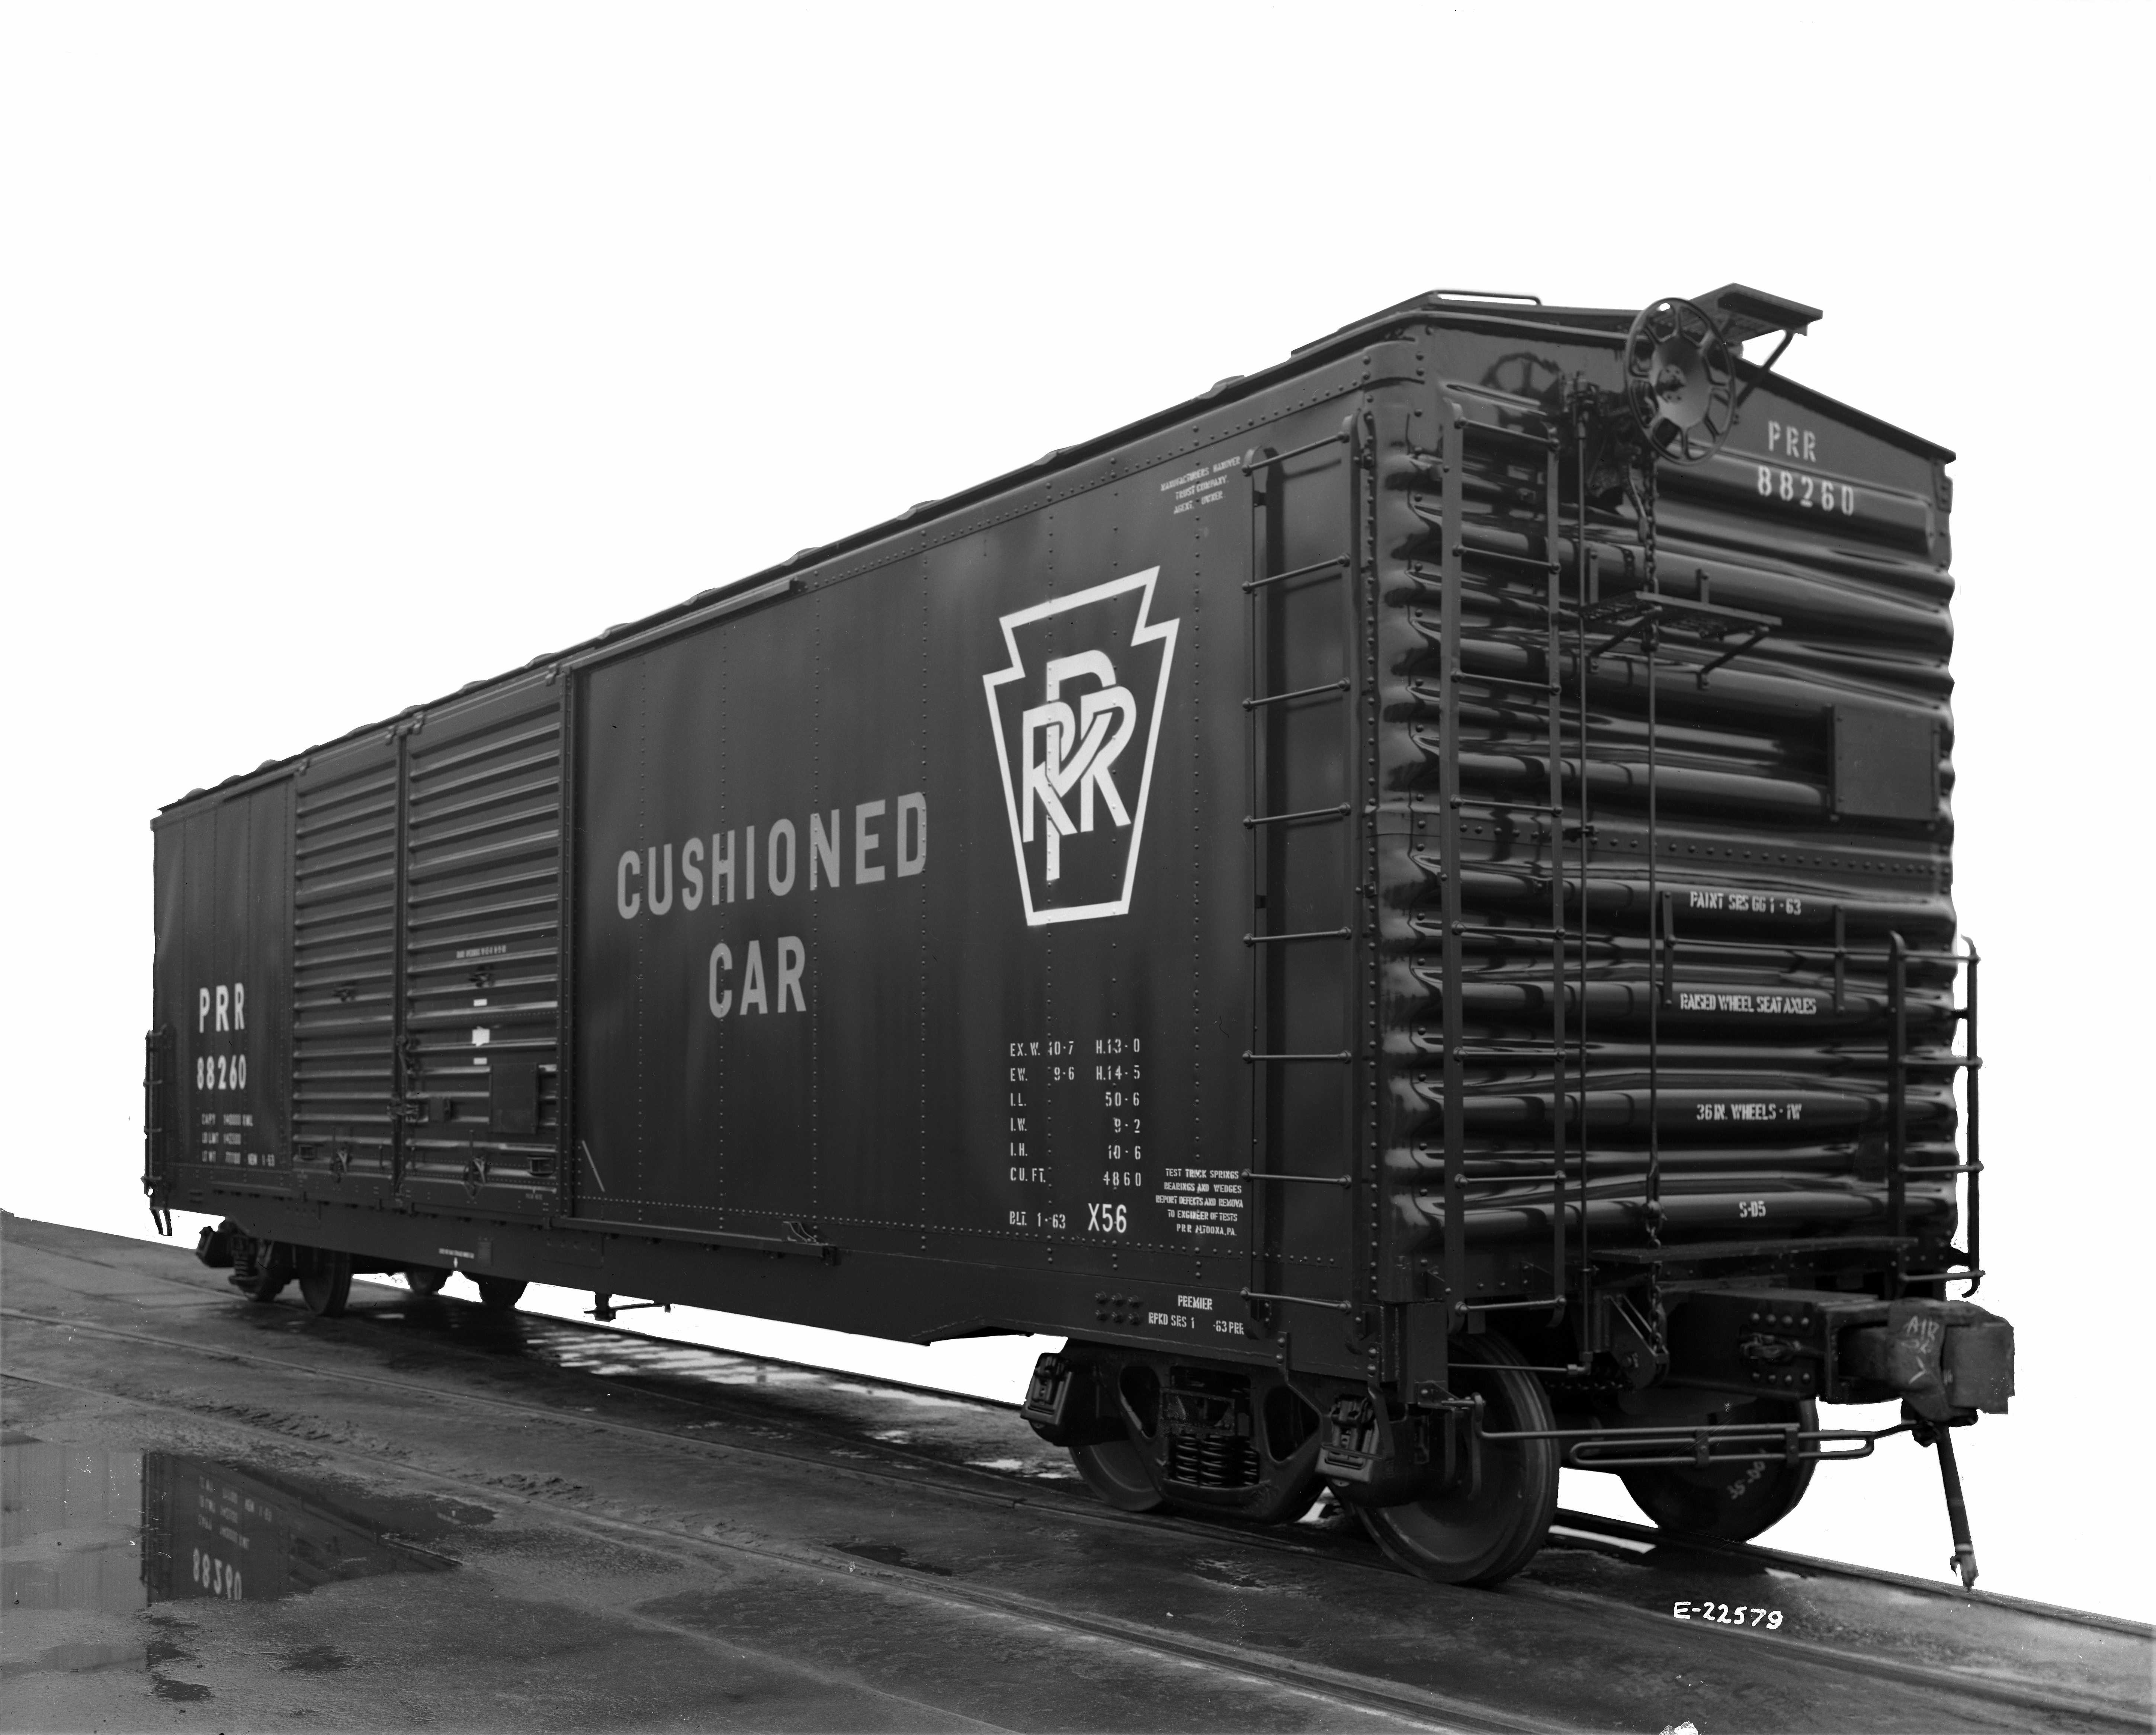 """Black and white, 3/4 view of a railroad box car. Stenciling on side reads """"Cushioned car""""."""